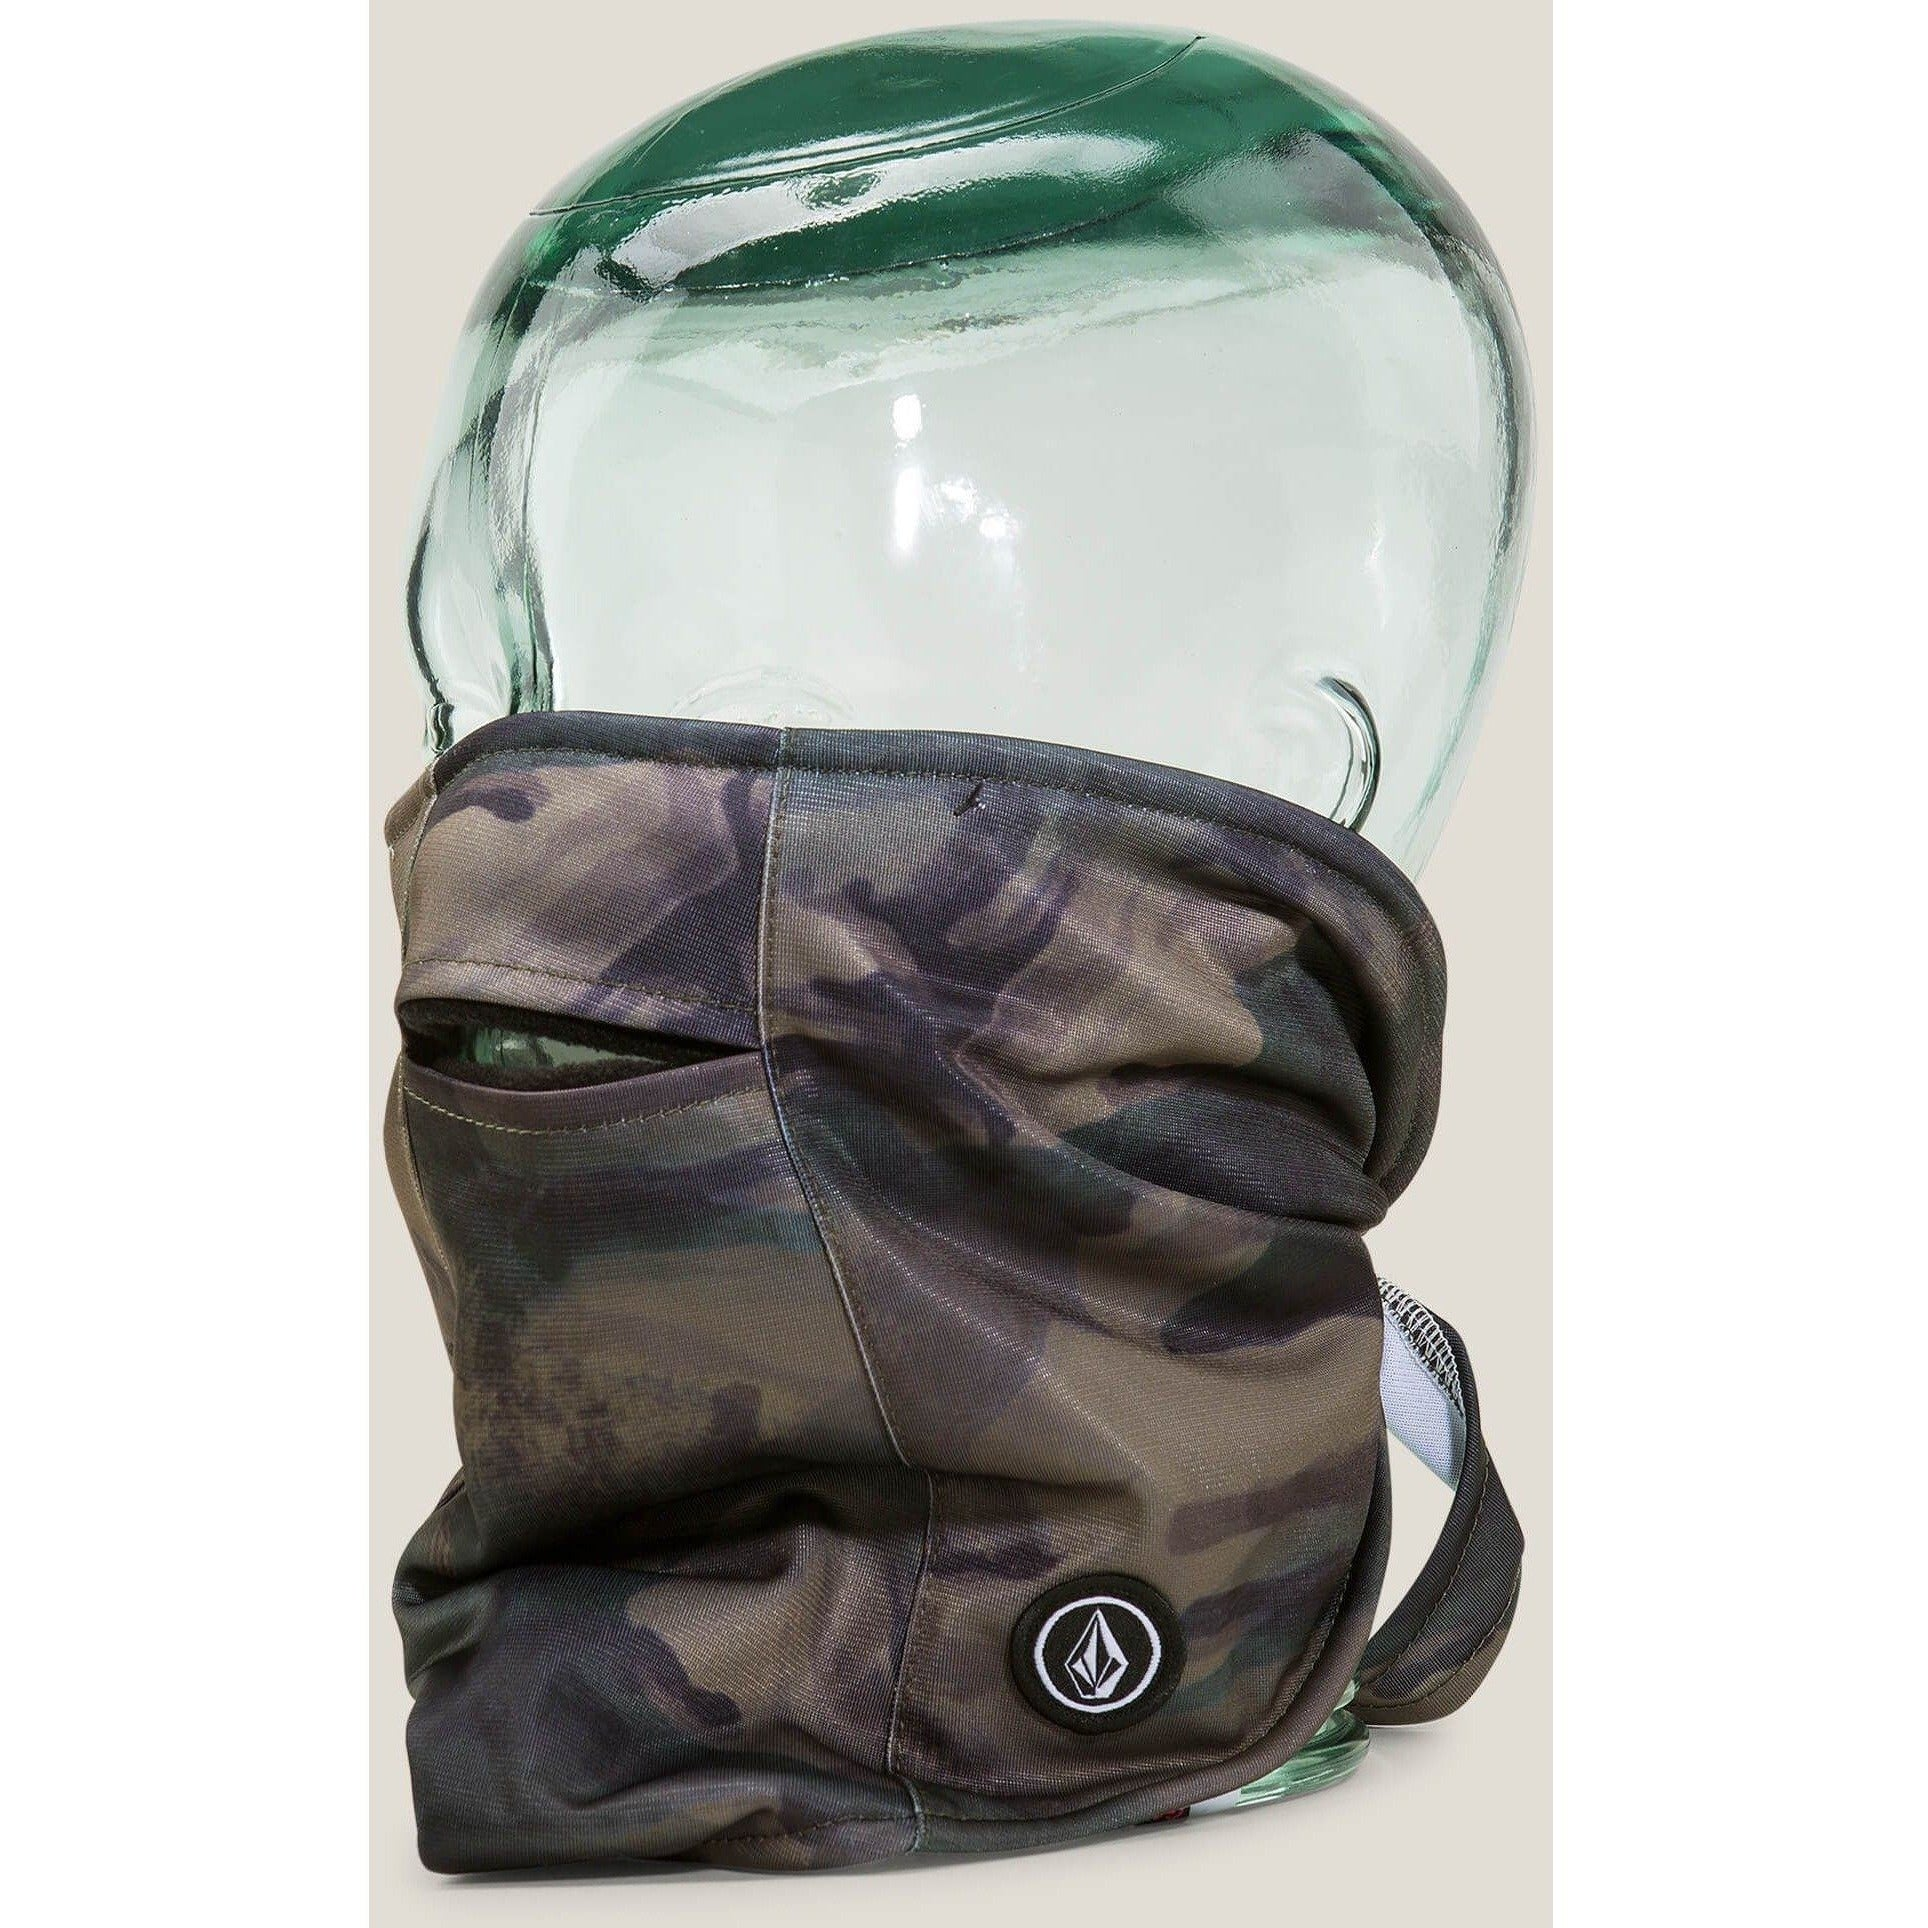 Volcom V.Co Tie Up Facemask - 88 Gear